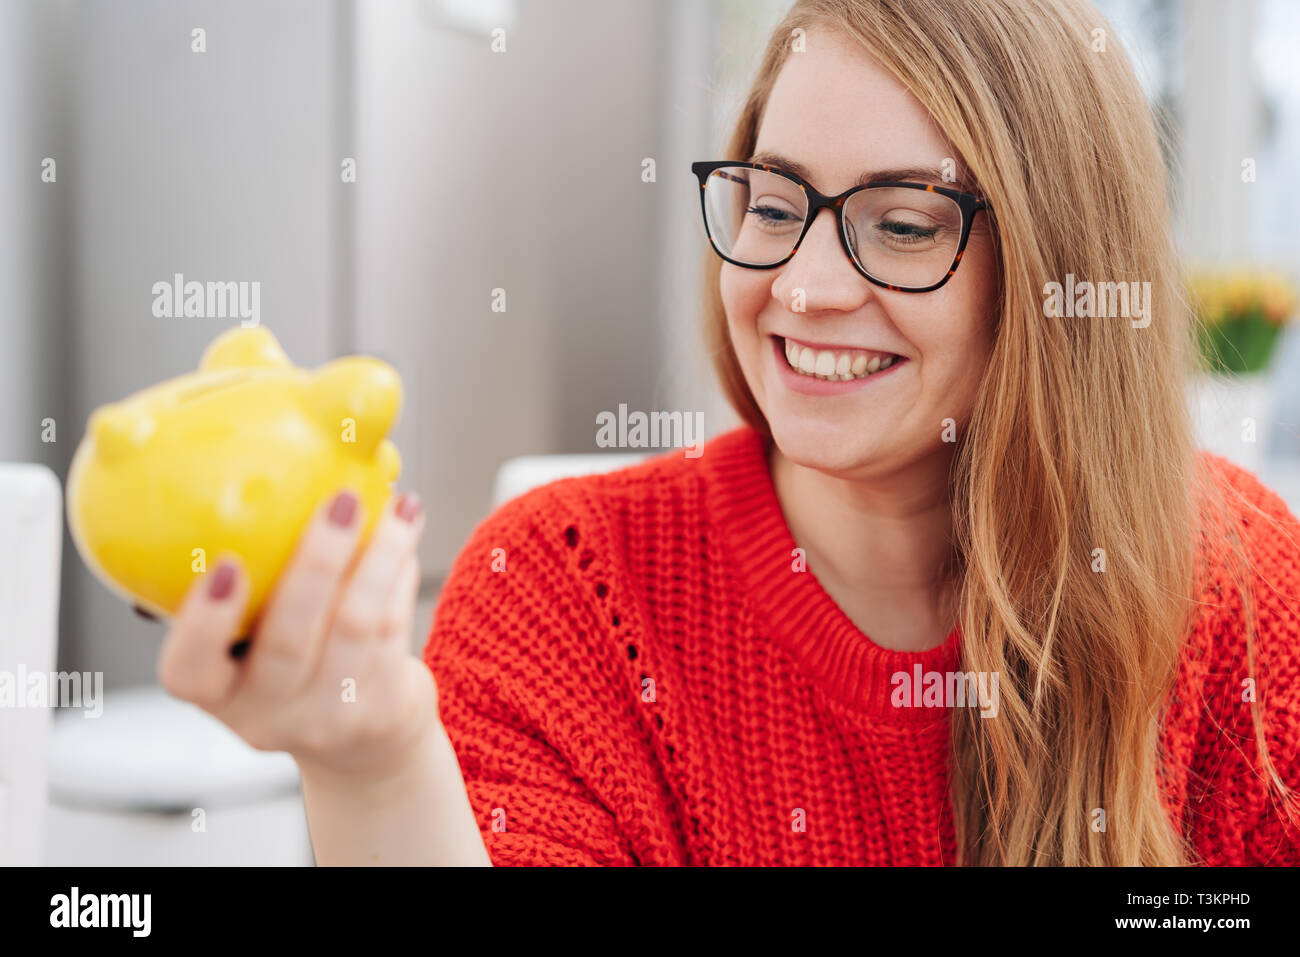 Young woman looking at her piggy bank with a pleased smile as she imagines everything she can do or achieve with her savings - Stock Image